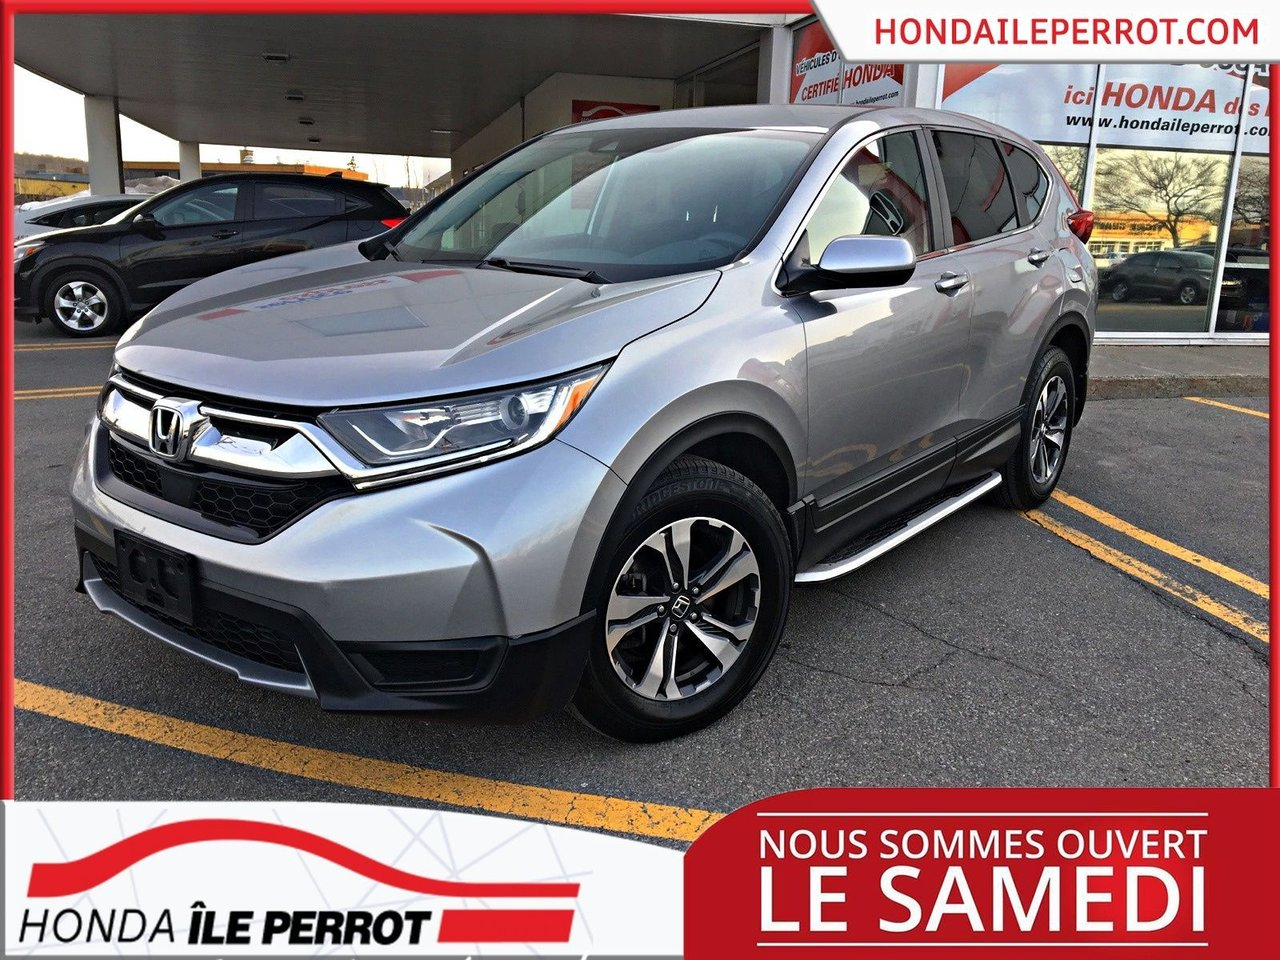 2017 Honda  CR-V LX , AWD 1.5 TURBO TECHNOLOGIE APPLE CARPLAY